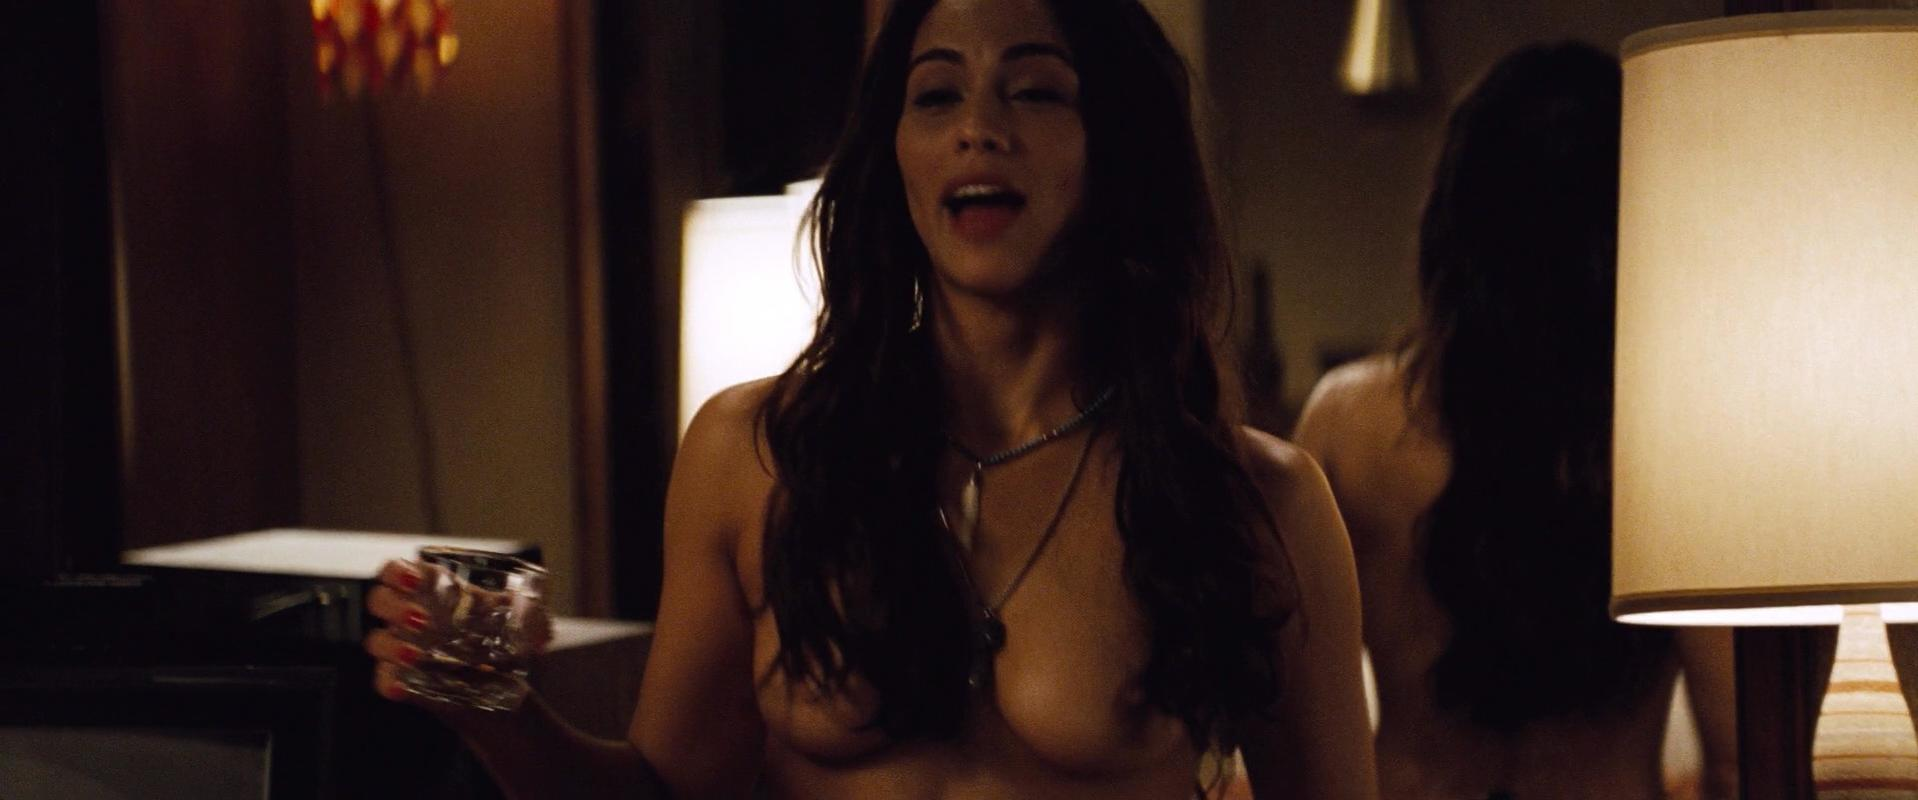 Paula Patton Naked Pictures photo 28